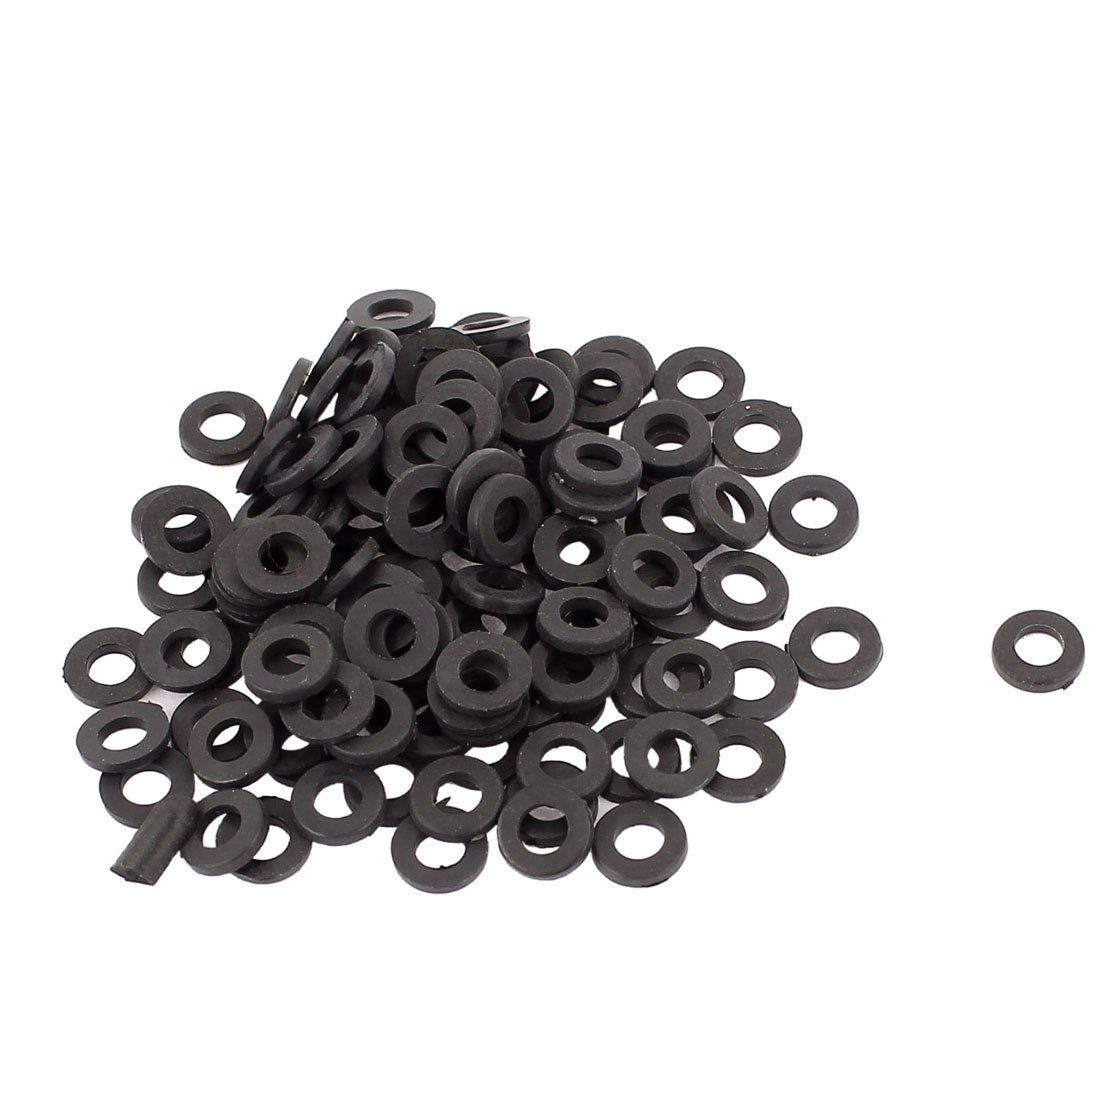 100pcs Round Insulation Nylon Flat Spacer Washer Gasket Ring 3 x 6 x 1mm Black